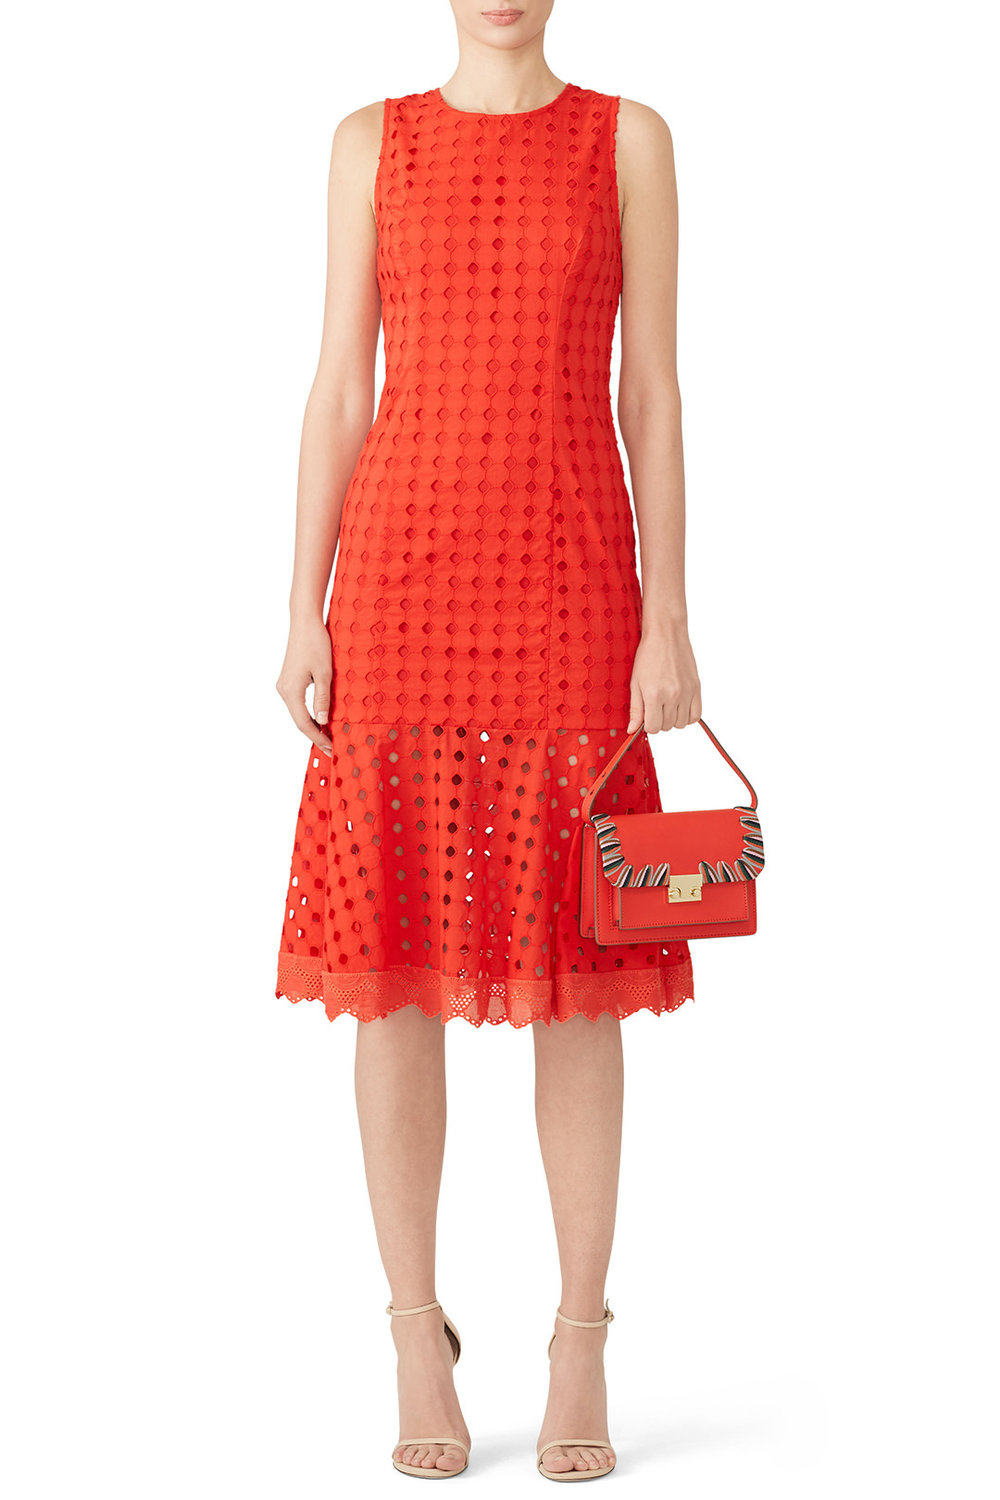 Donna Morgan Red Eyelet Flounce Dress